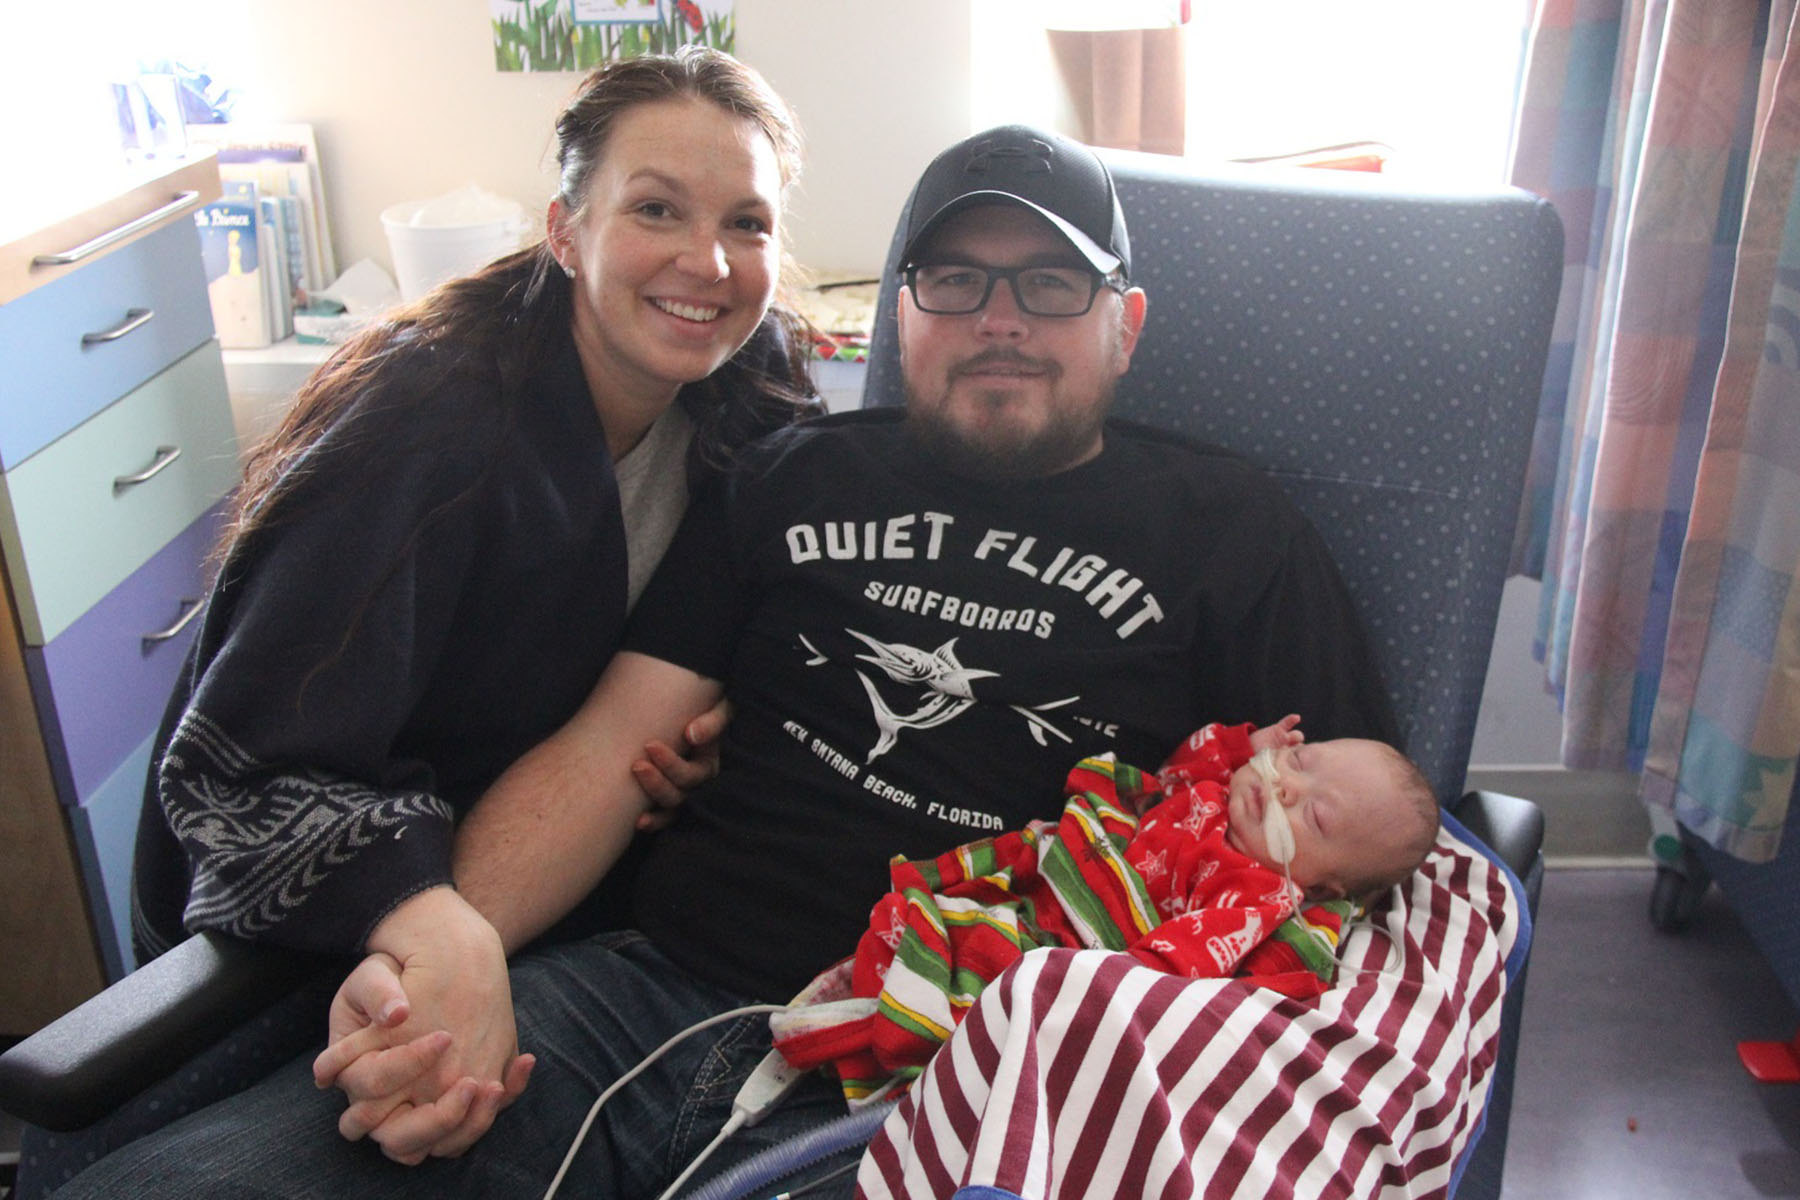 Kim, David and Cayden pose for a photo in a hospital room.